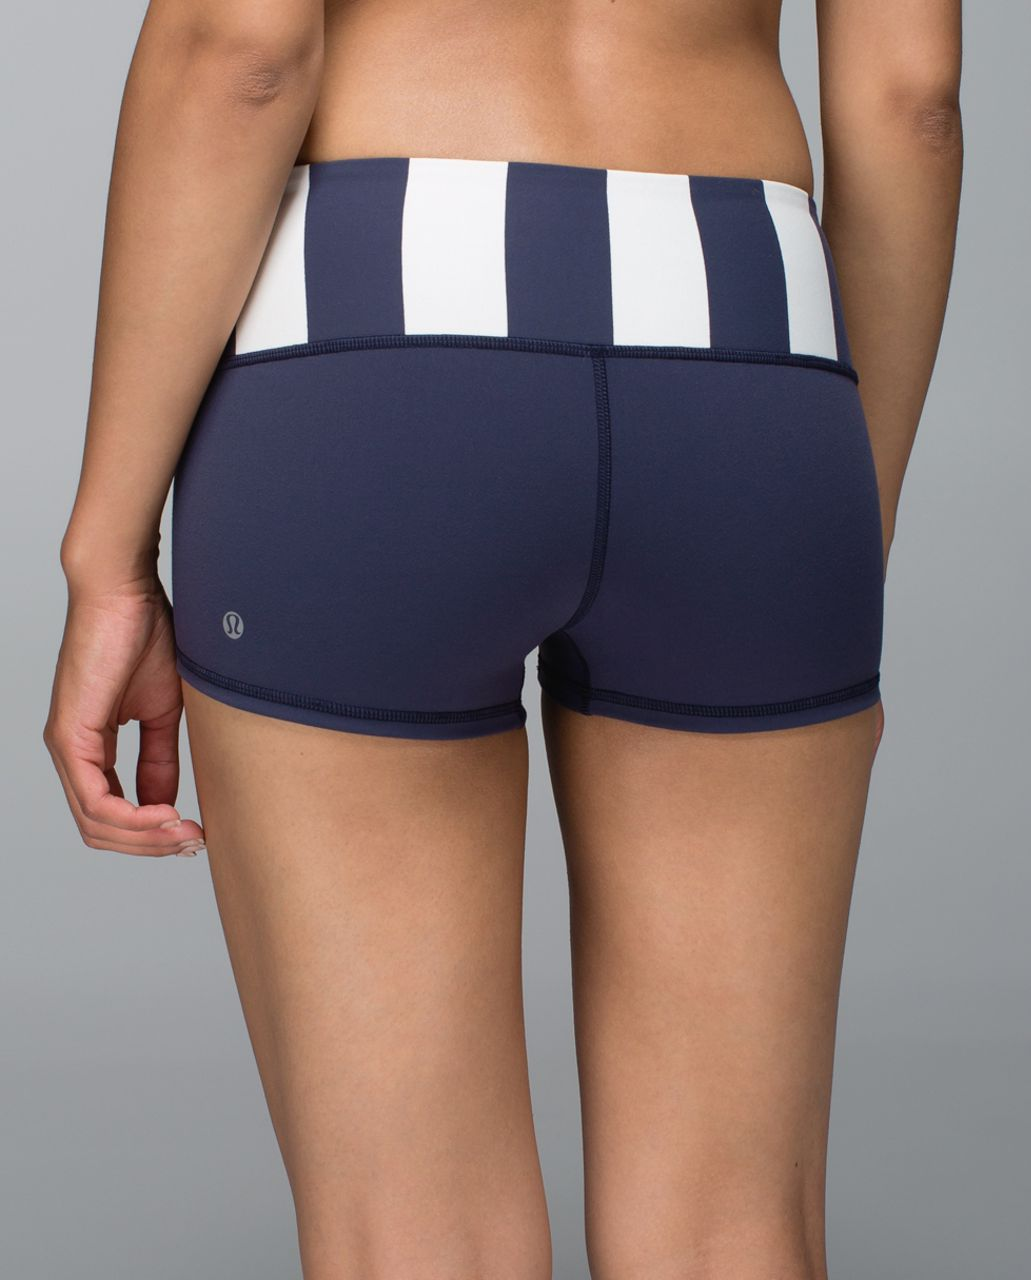 Lululemon Boogie Short *Full-On Luon - Cadet Blue / Steep Stripe Cadet Blue Horizontal